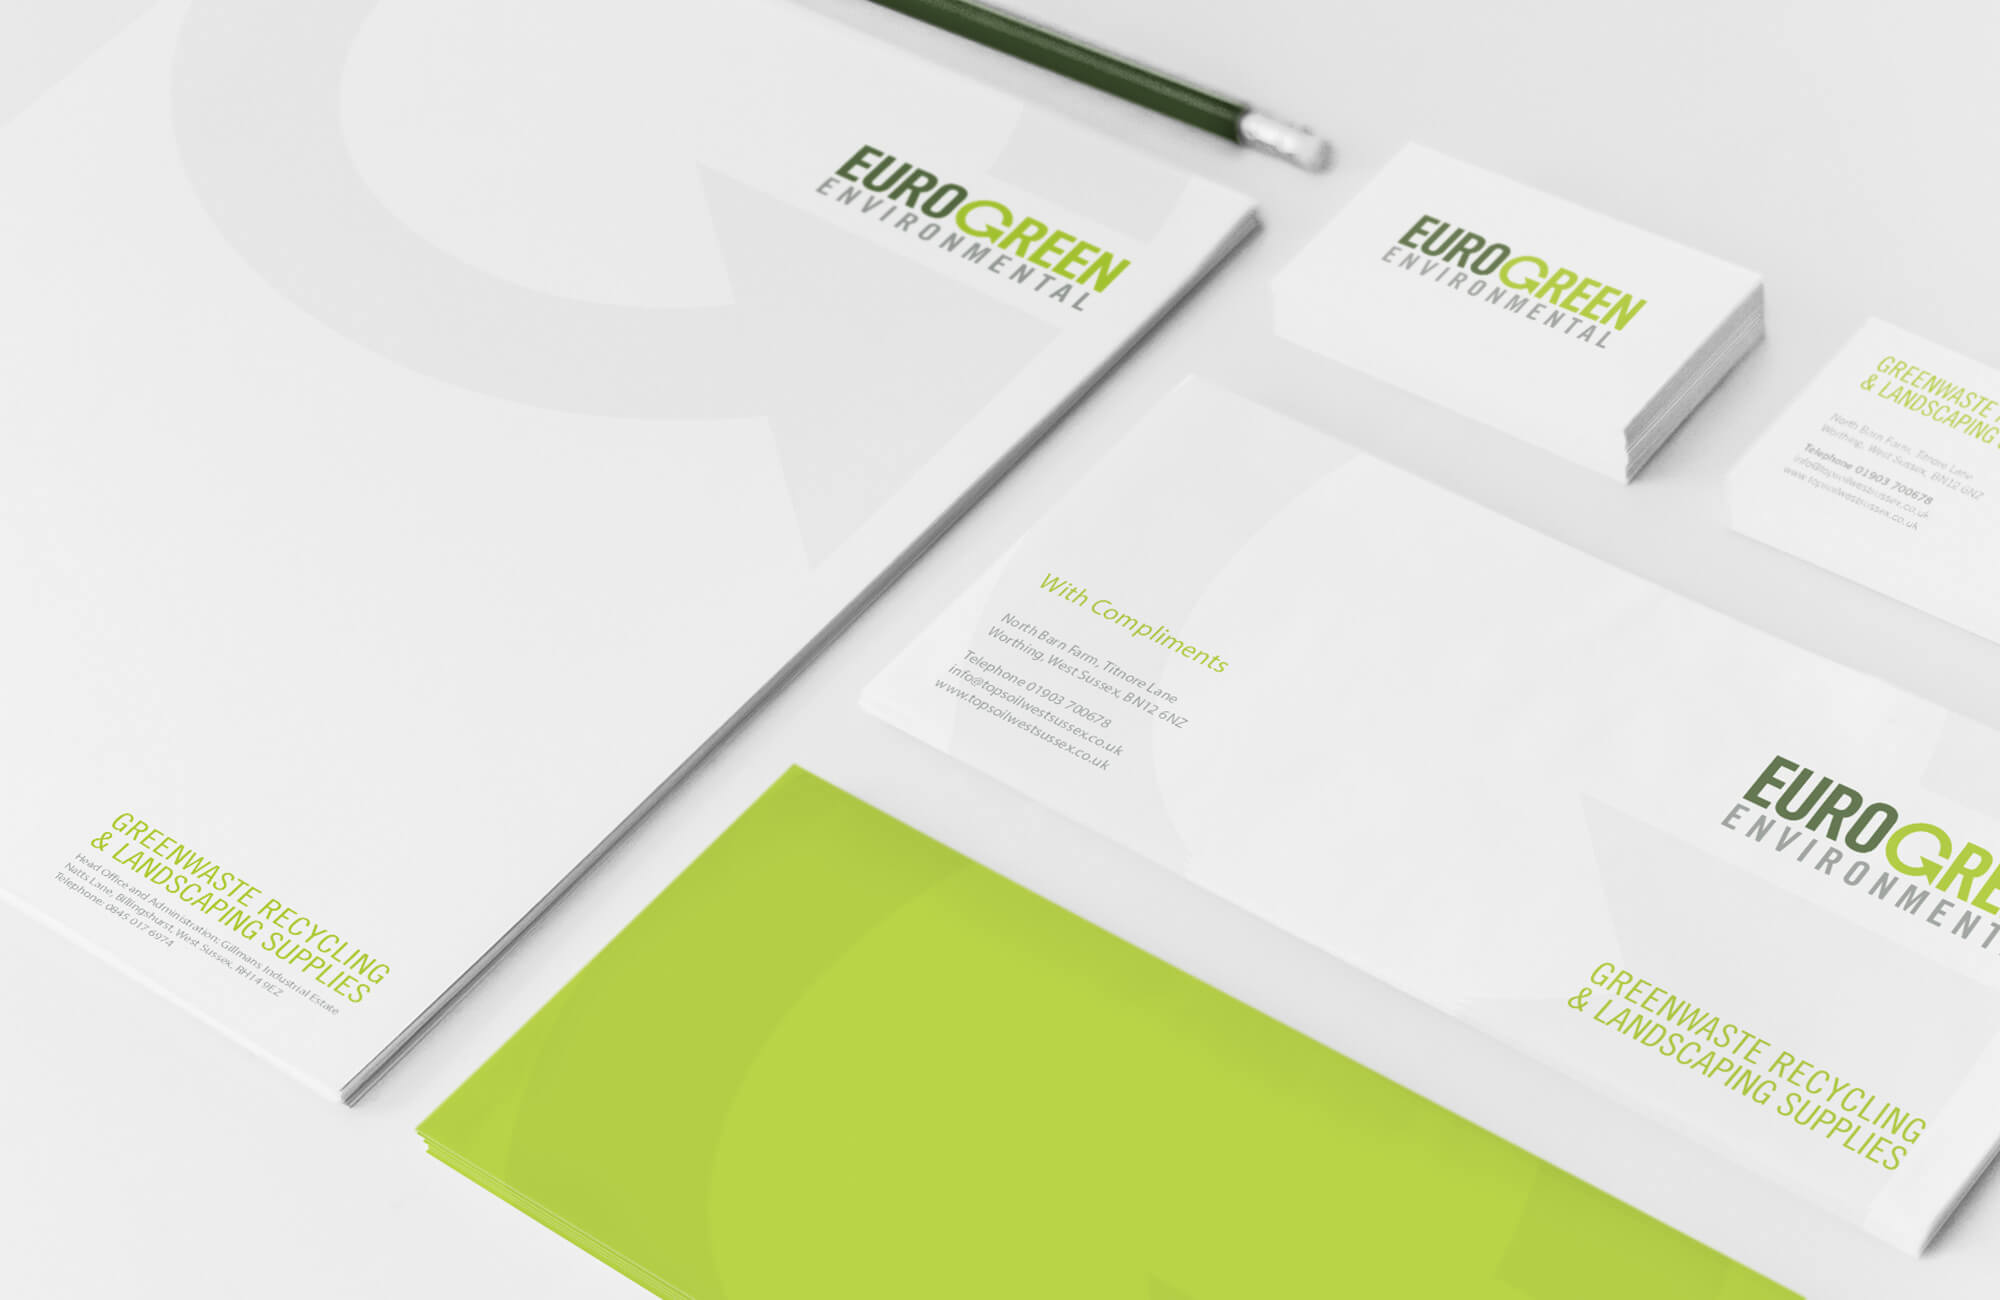 Eurogreen Rebrand and Stationery Design